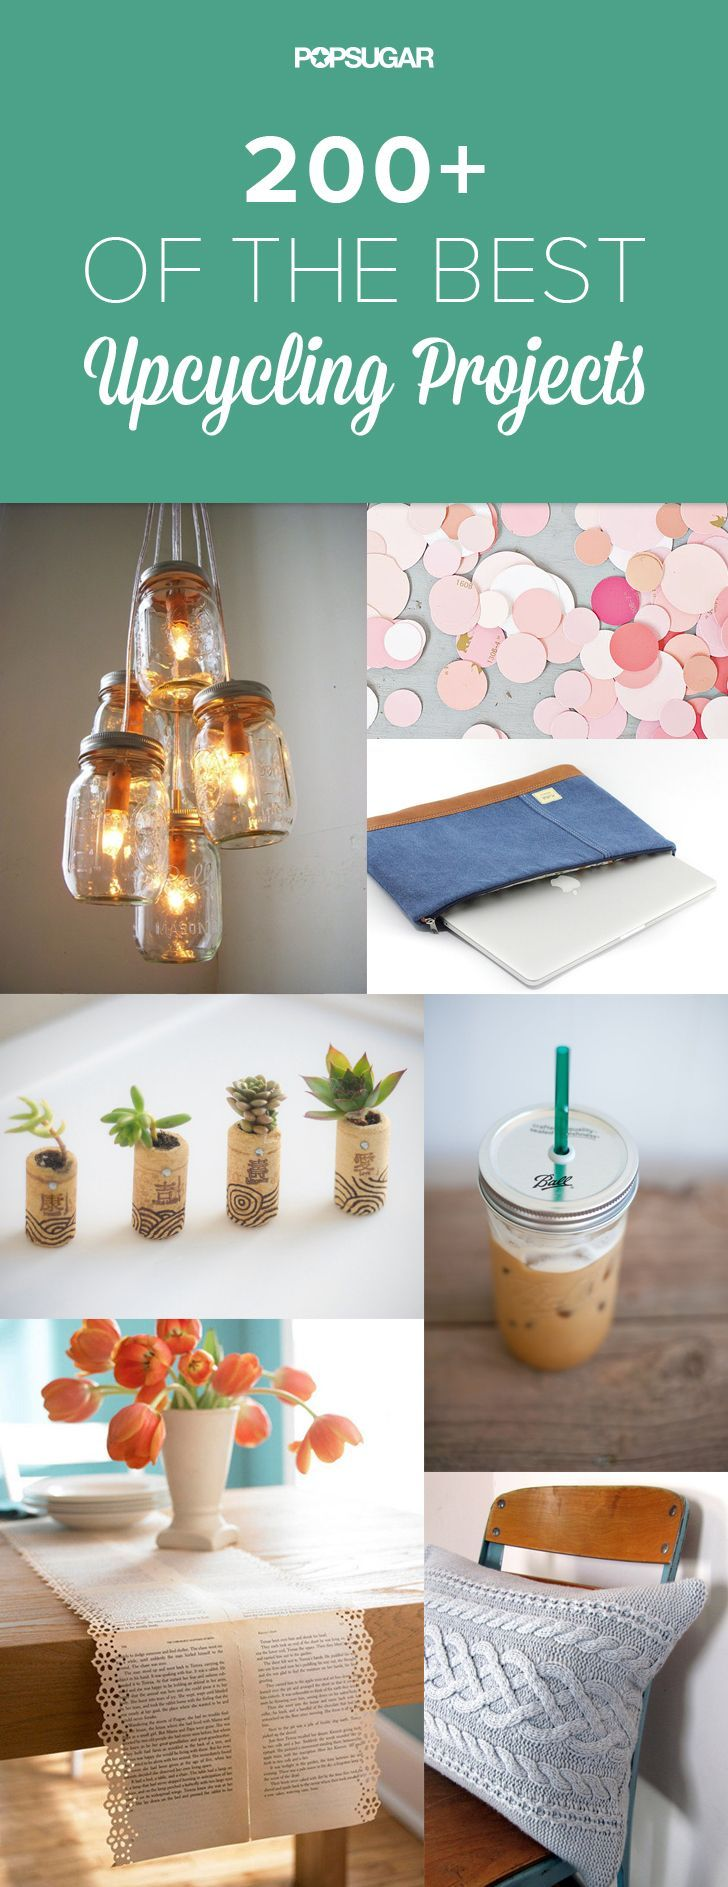 How to's : OMIGOSH. We have to try these out. So adorable and who knew?! Look at these 200 upcycling ideas that will blow your mind! #FYI #UpcycleIt #Mindblown